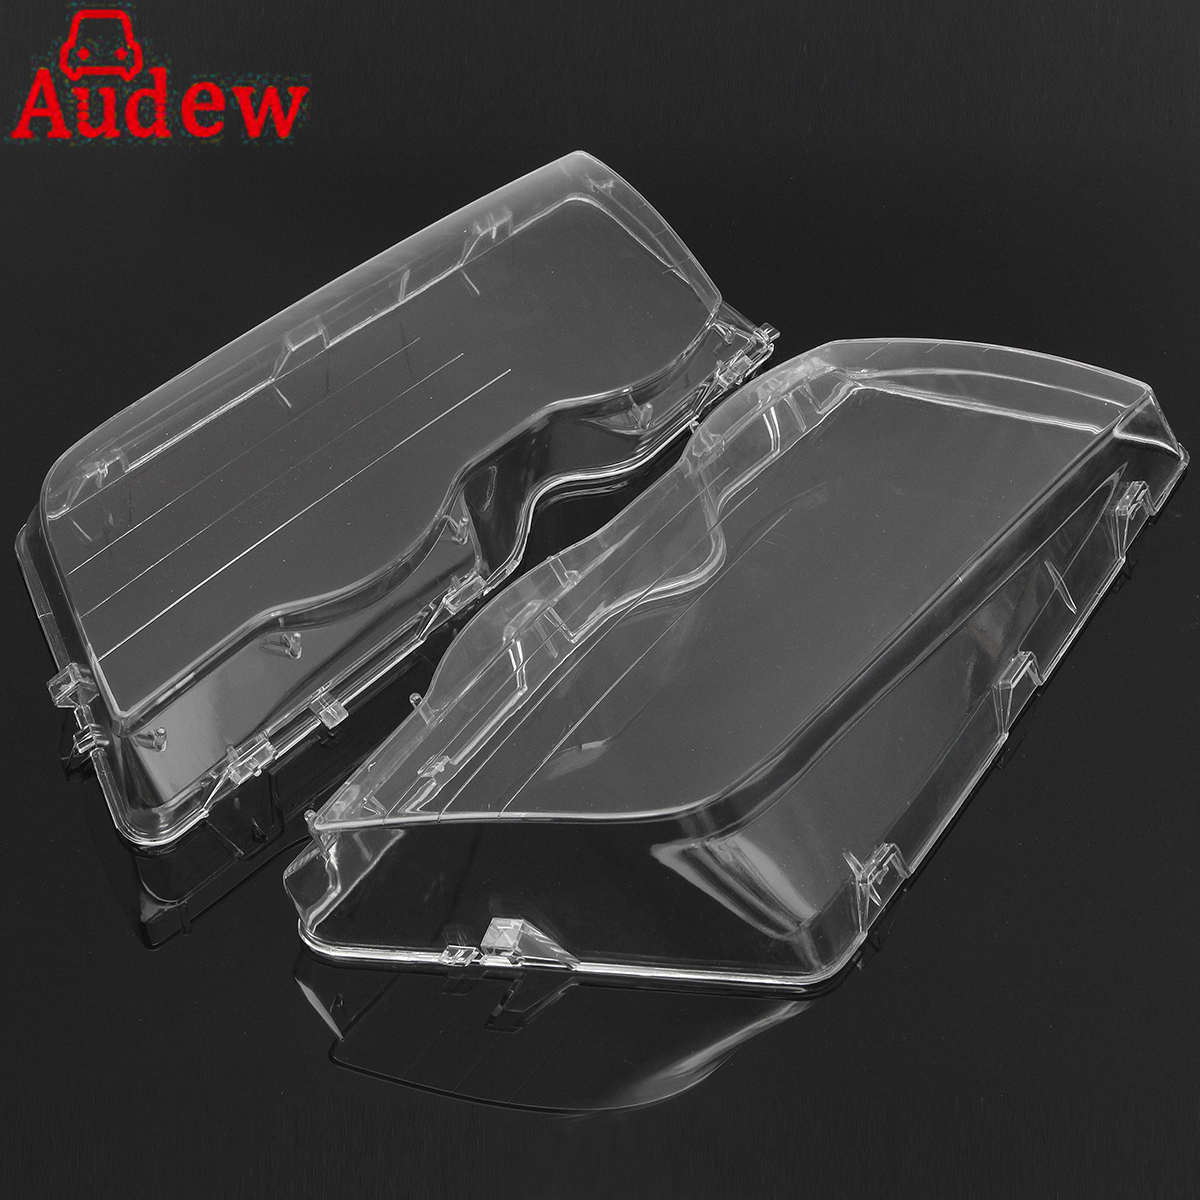 Pair Car Housing Headlight Lens Shell Cover Lamp Assembly For BMW E46 3-Series /4DR /Wagon /Sedan 1999 -2001